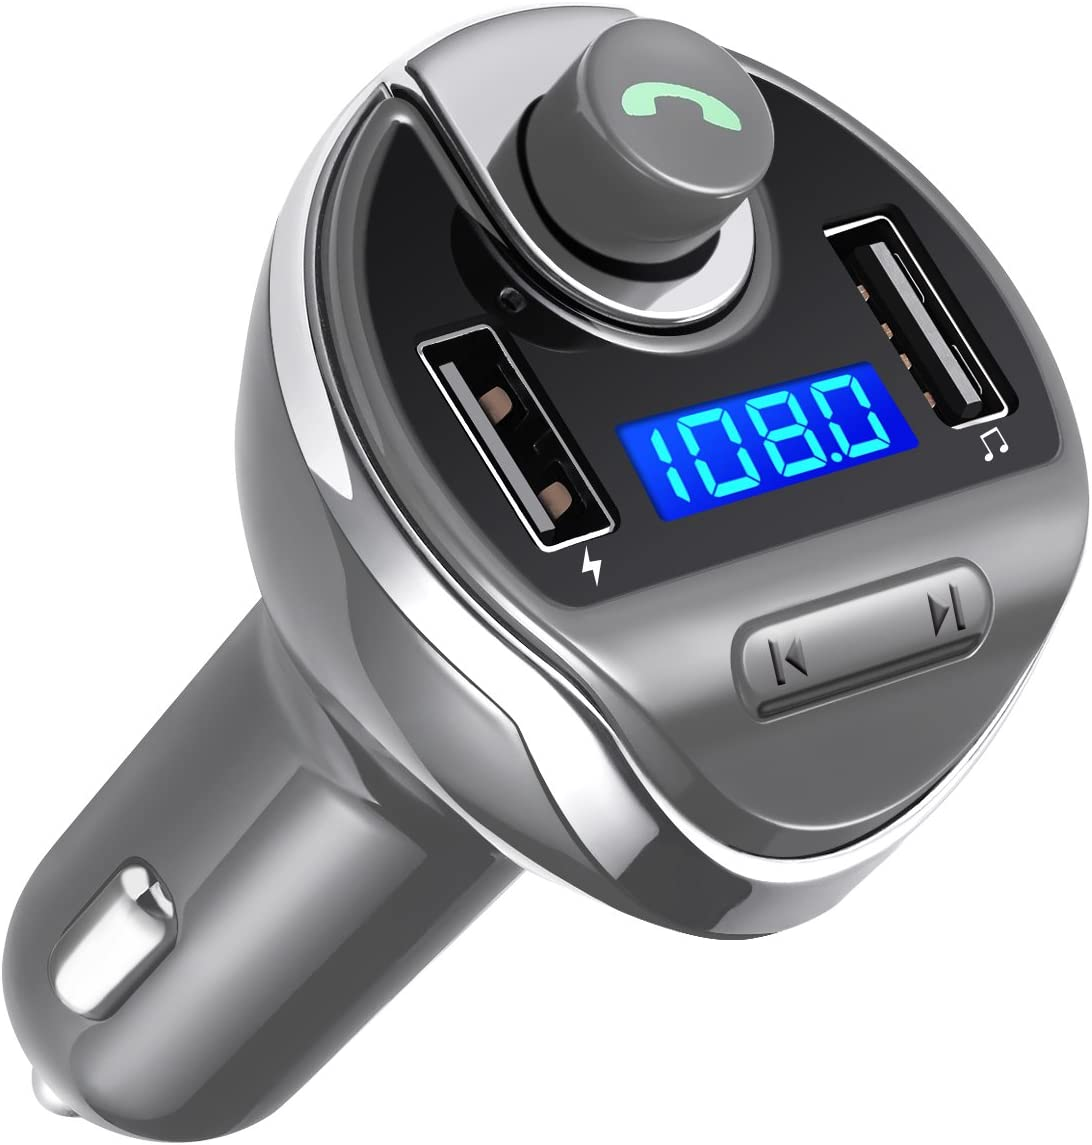 Criacr Bluetooth FM Transmitter for Car, Wireless FM Transmitter Radio Adapter Car Kit, Universal Car Charger with Dual USB Charging Ports, Hands Free Calling for All Smartphones.(Grey)